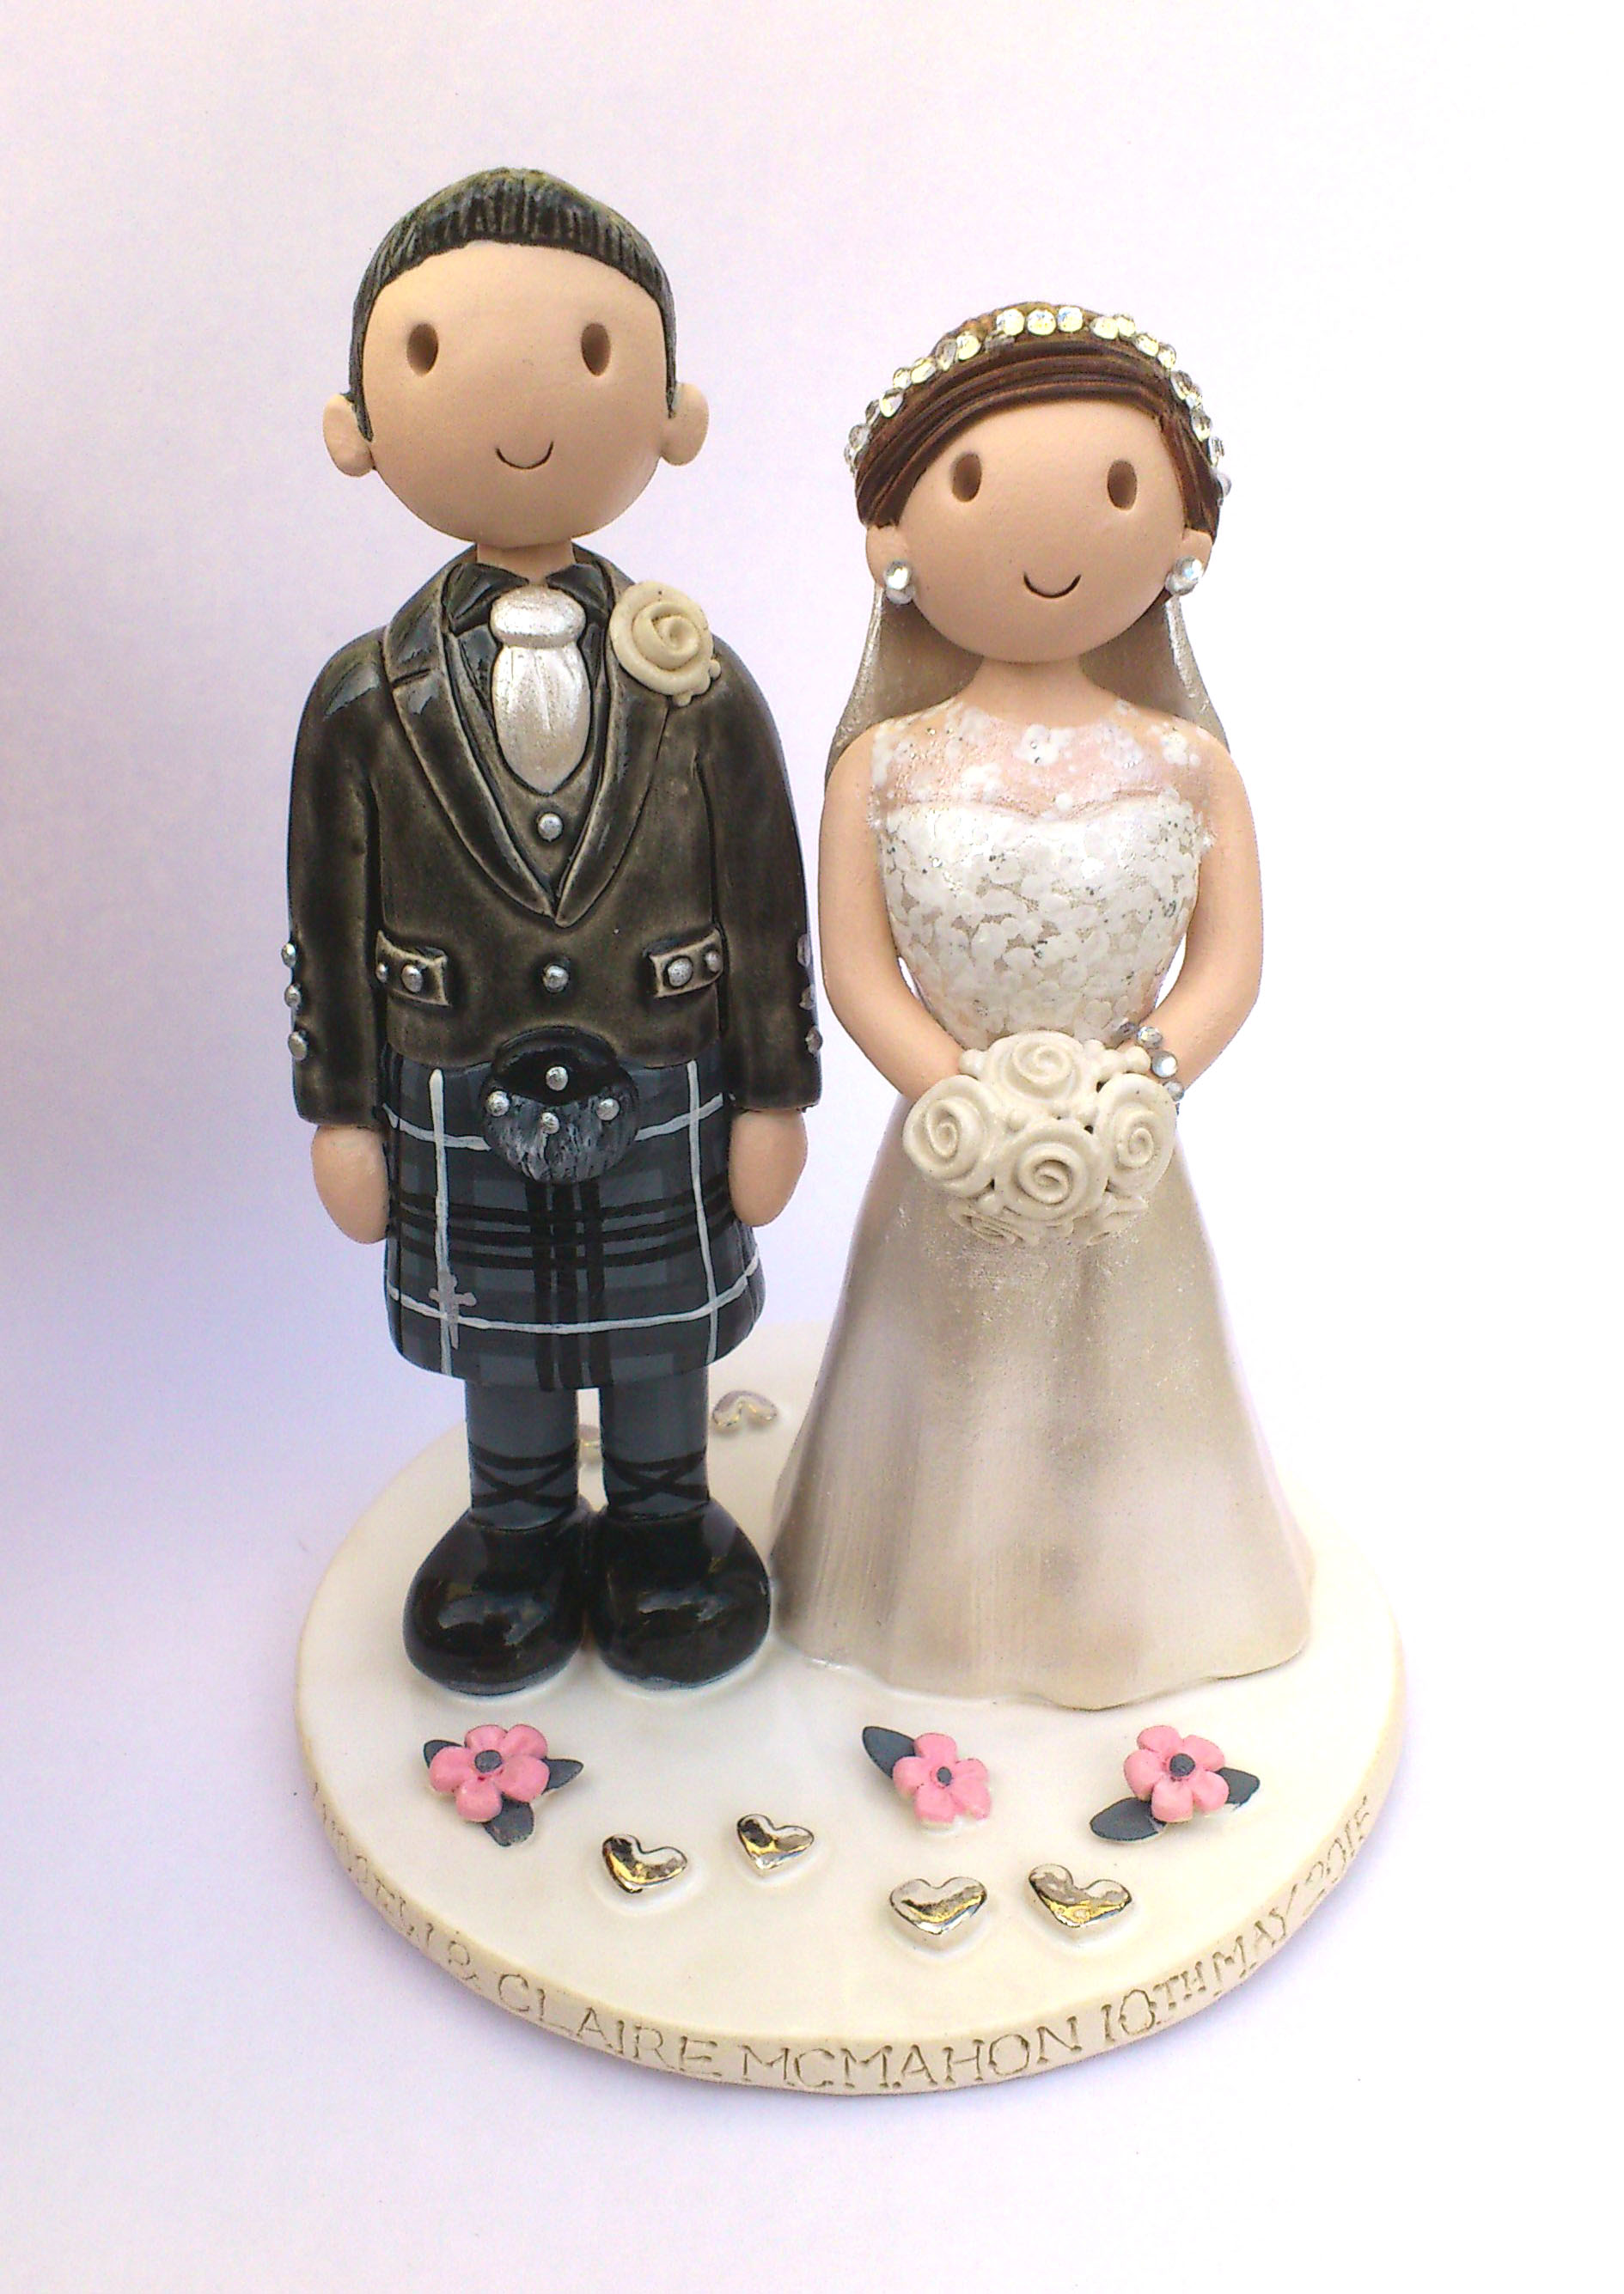 wedding cake toppers personalised uk wedding cake toppers gallery made personalised cake 26573